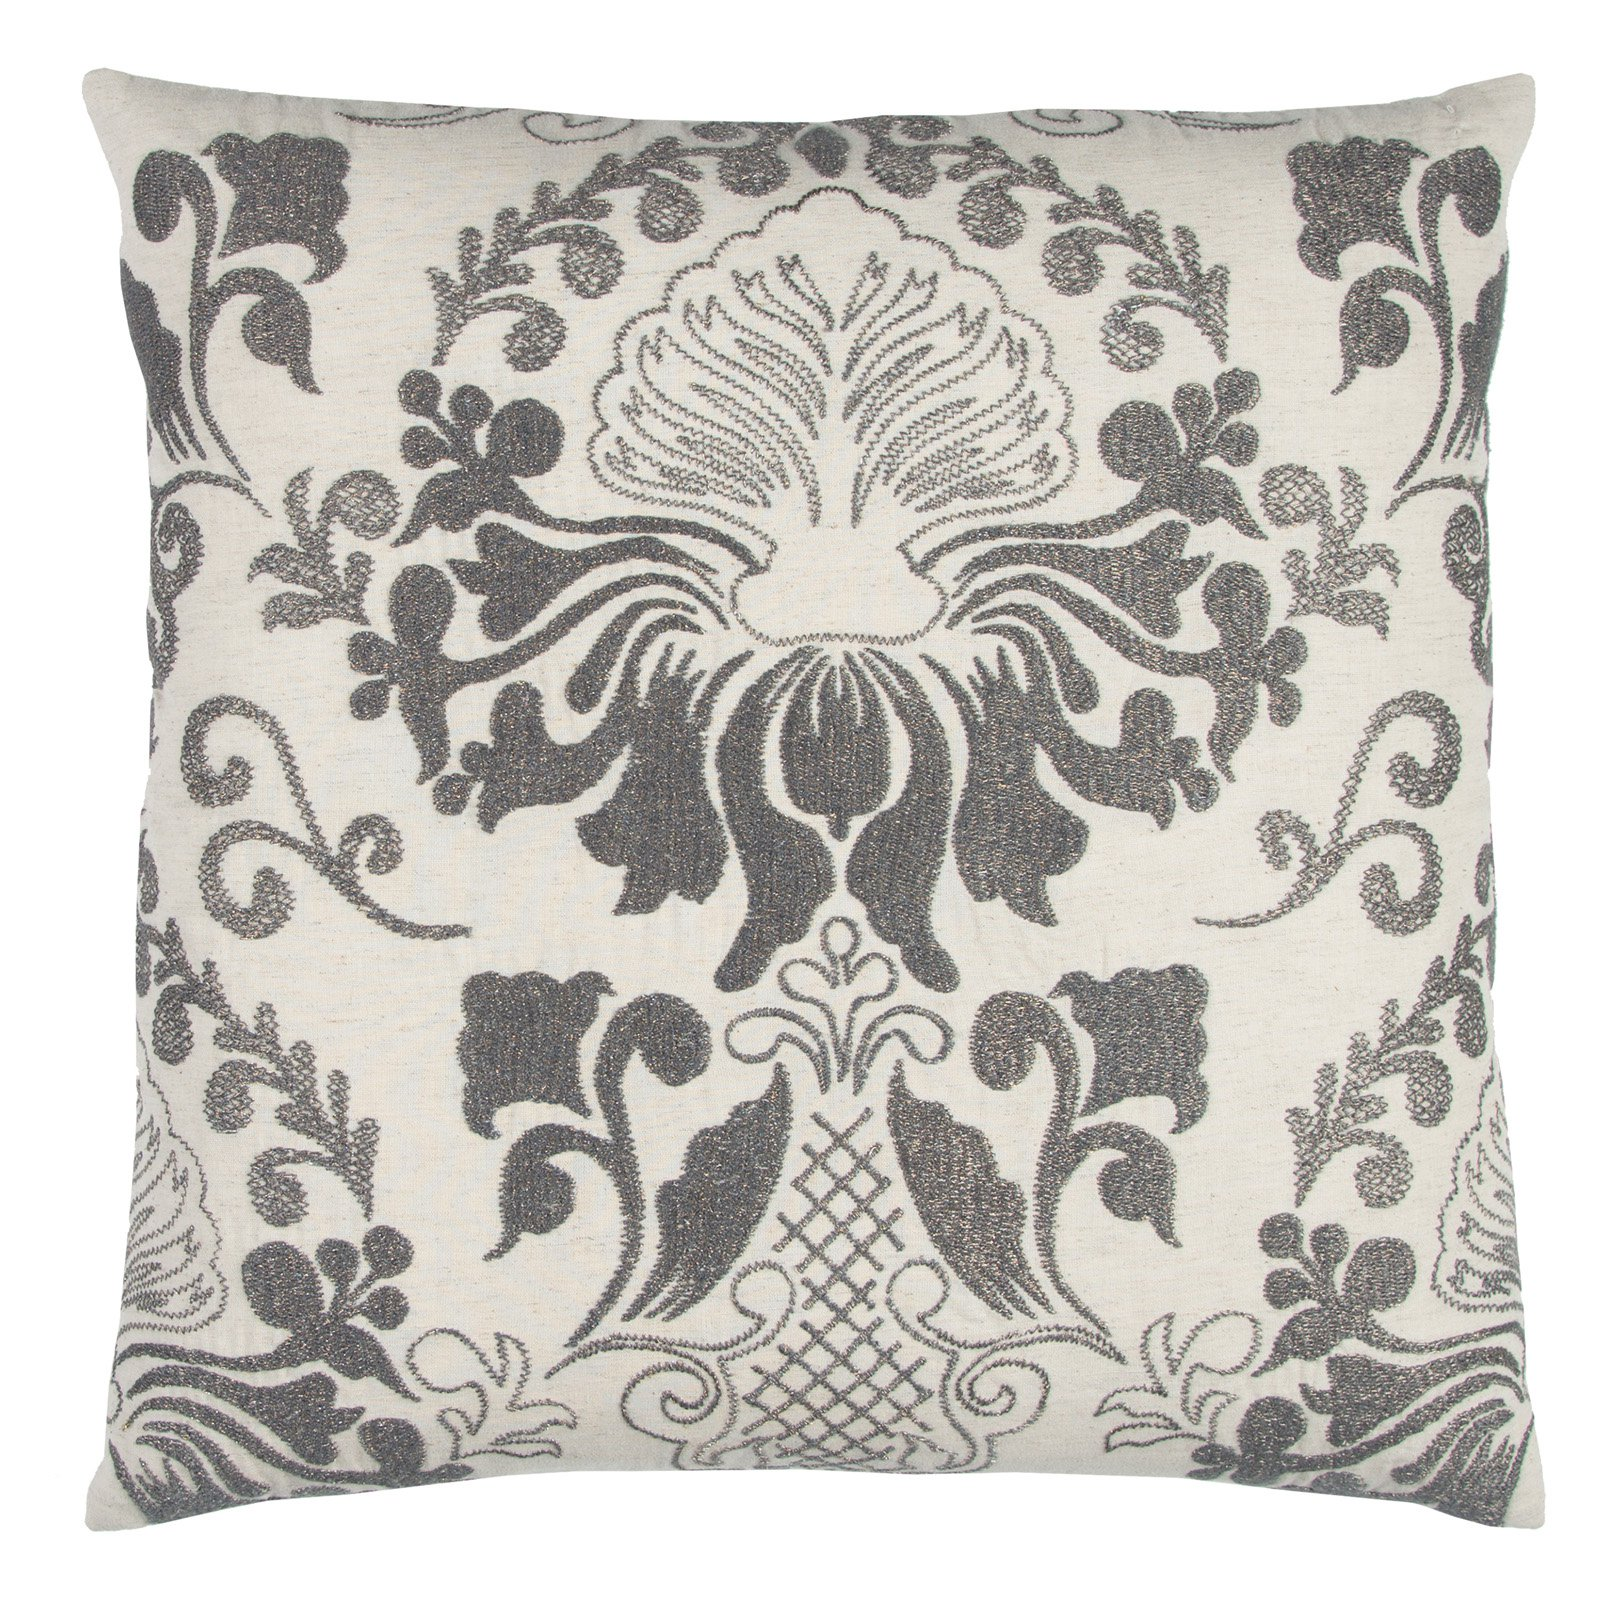 """Rizzy Home Decorative Poly Filled Throw Pillow Damask 20""""X20"""" Gray"""